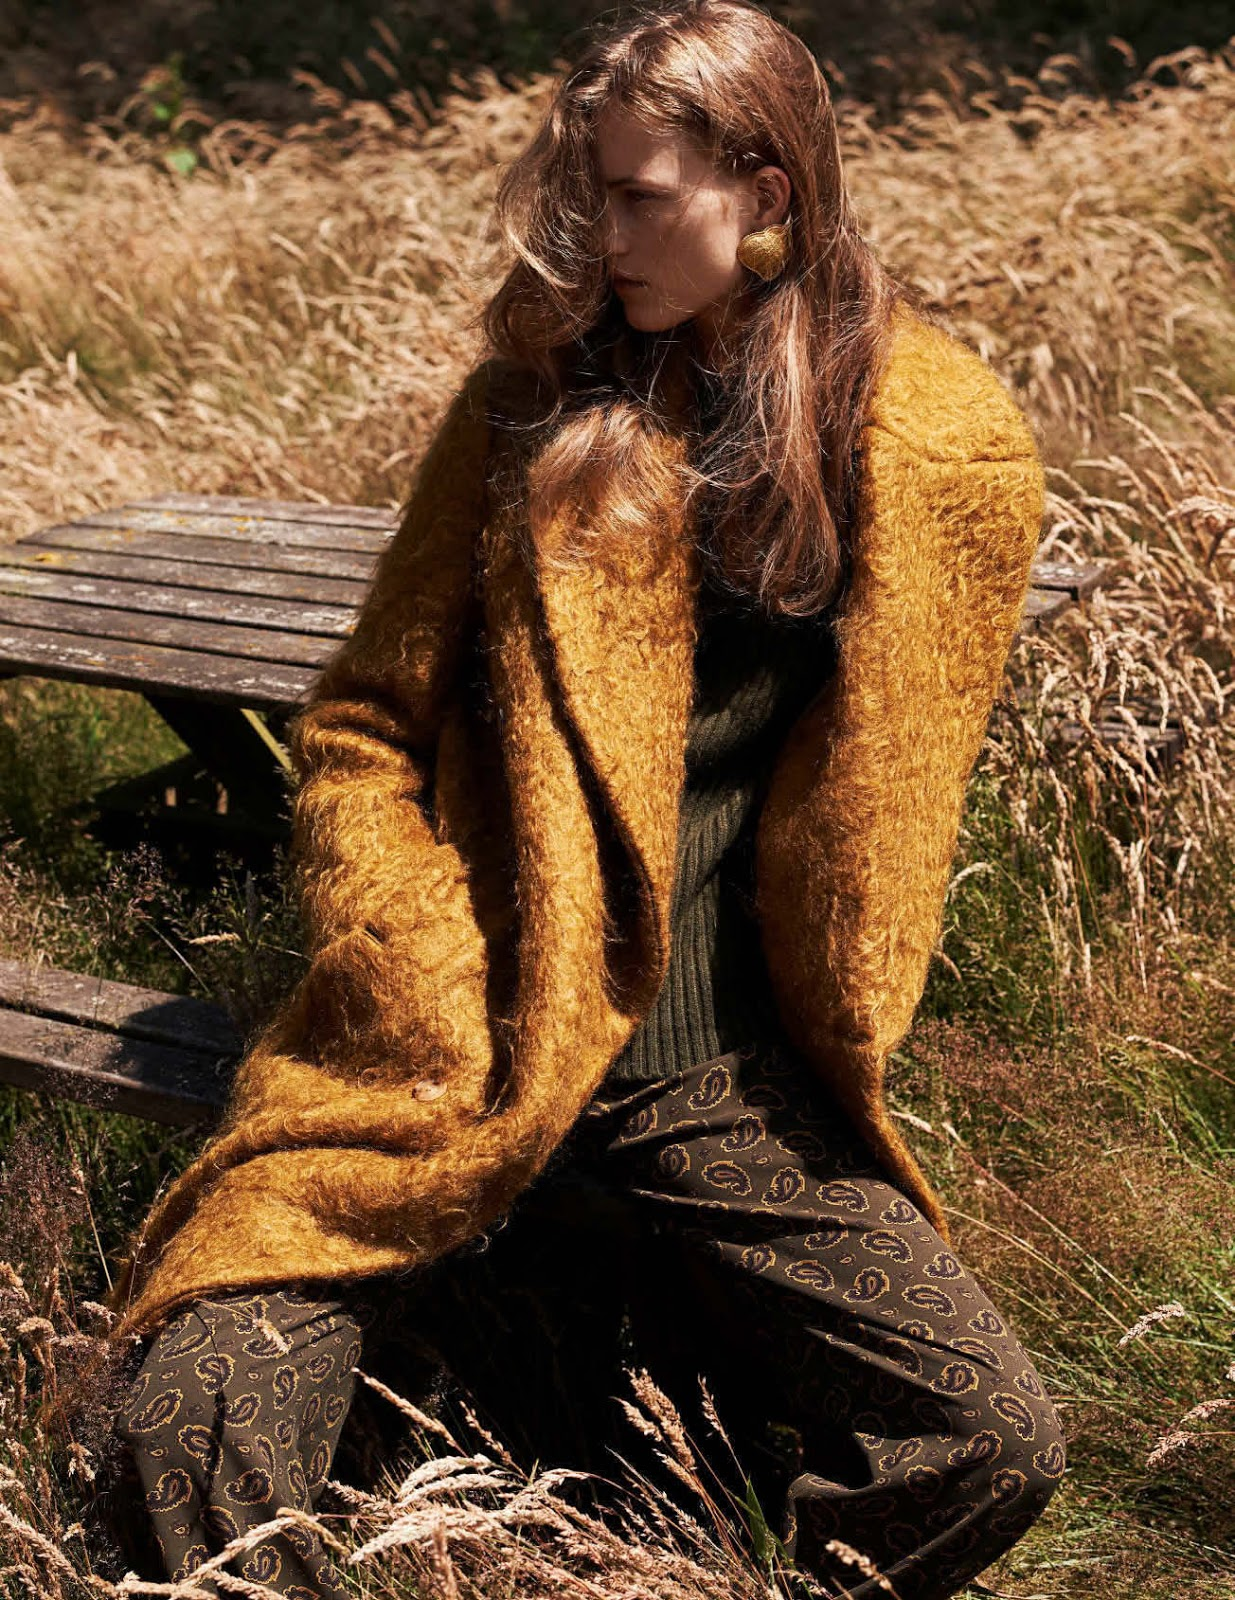 Fashion October 2016: Country Strong: Julie Hoomans By Paul Bellaart For Vogue